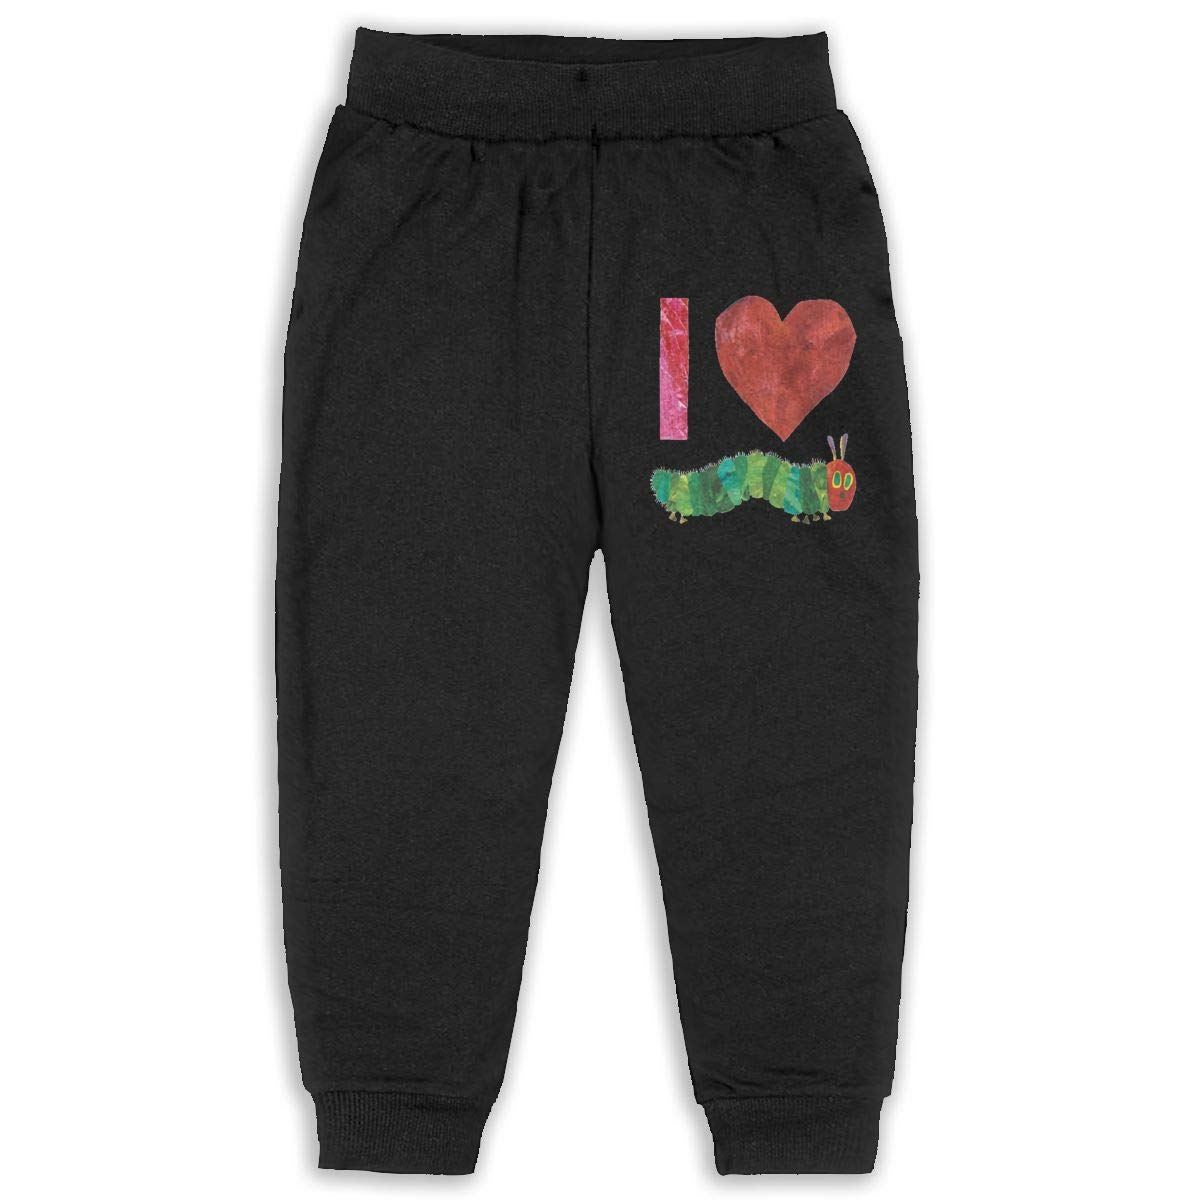 Sunshine Store I Love The Very Hungry Caterpillar Kids /& Toddler Pants Soft Cozy Kids Sweatpants